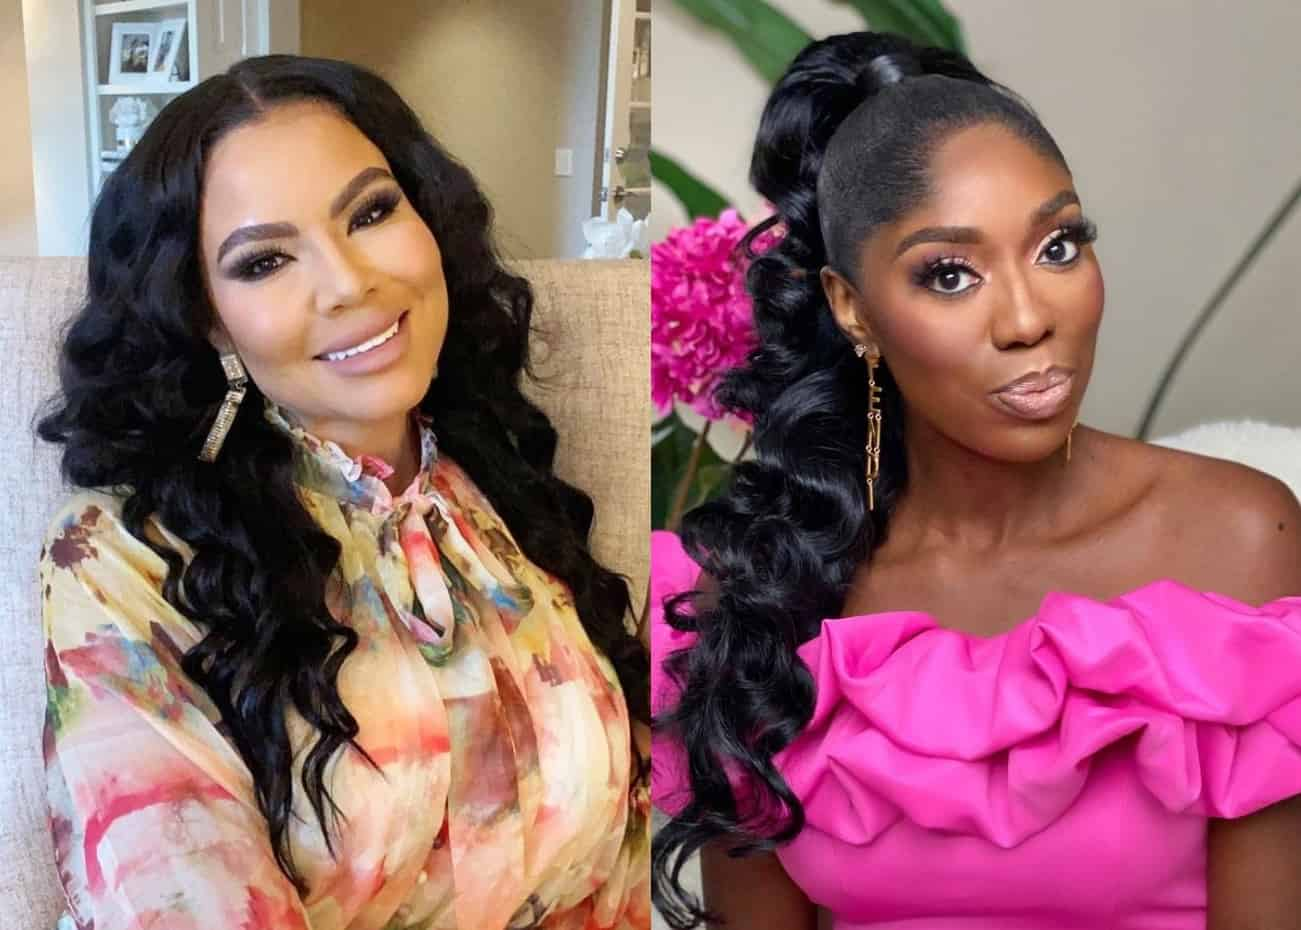 """RHOP Star Mia Thornton Accuses Wendy Osefo of """"Defamation of Character"""" for Implying She Lied About Age, Says Team is Documenting """"Every Move"""" as Robyn and Gizelle Weigh in"""